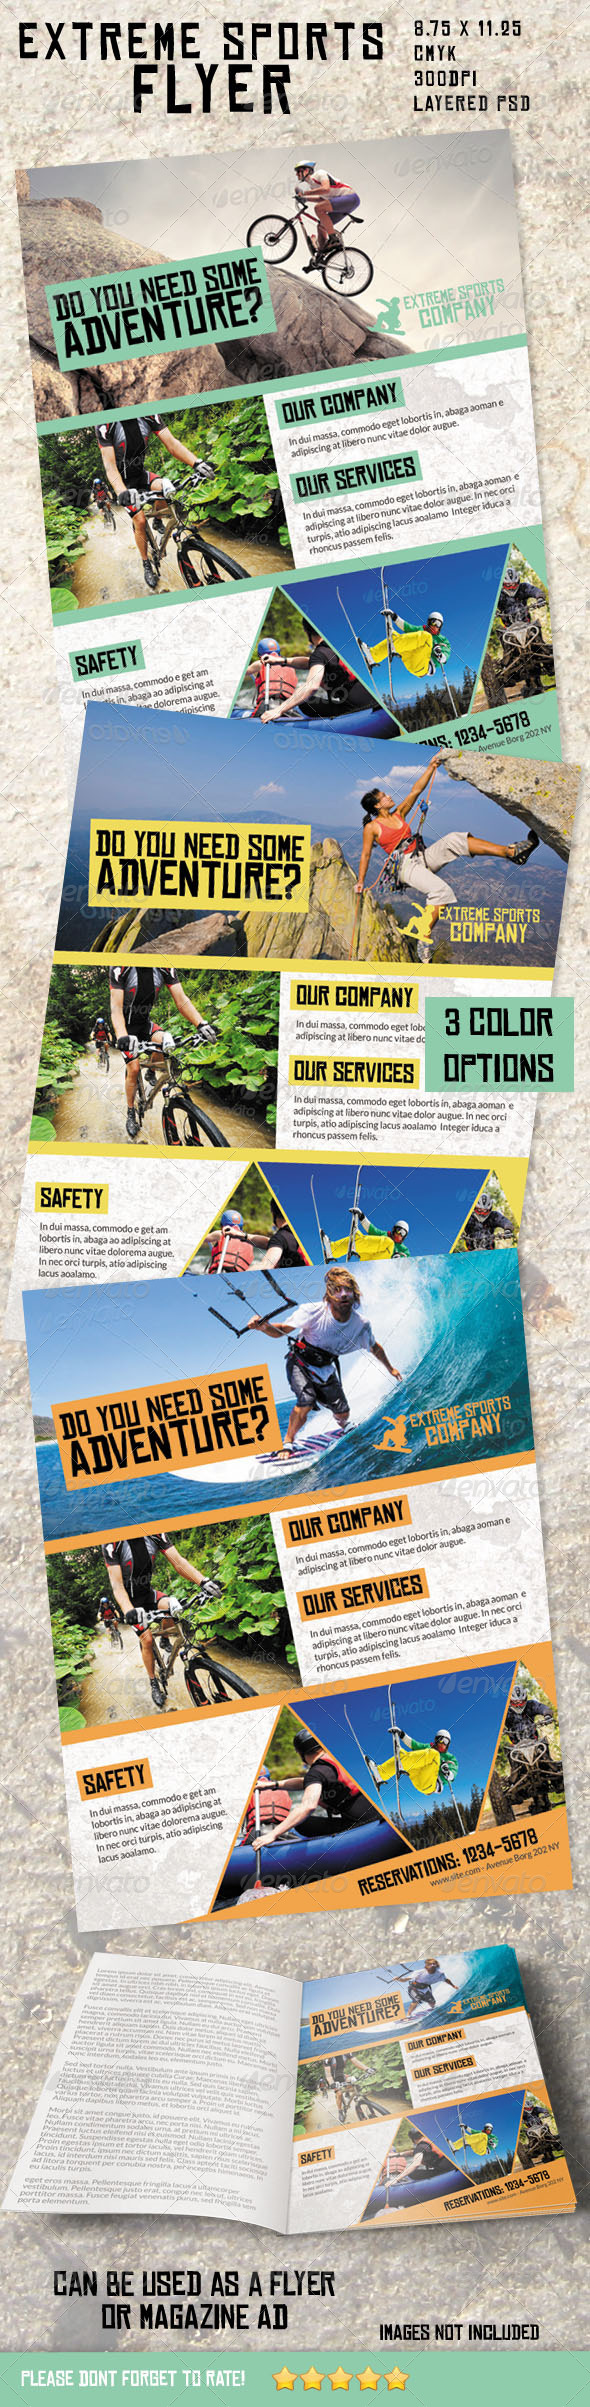 Extreme Sports Flyer/ Magazine Ad - Sports Events